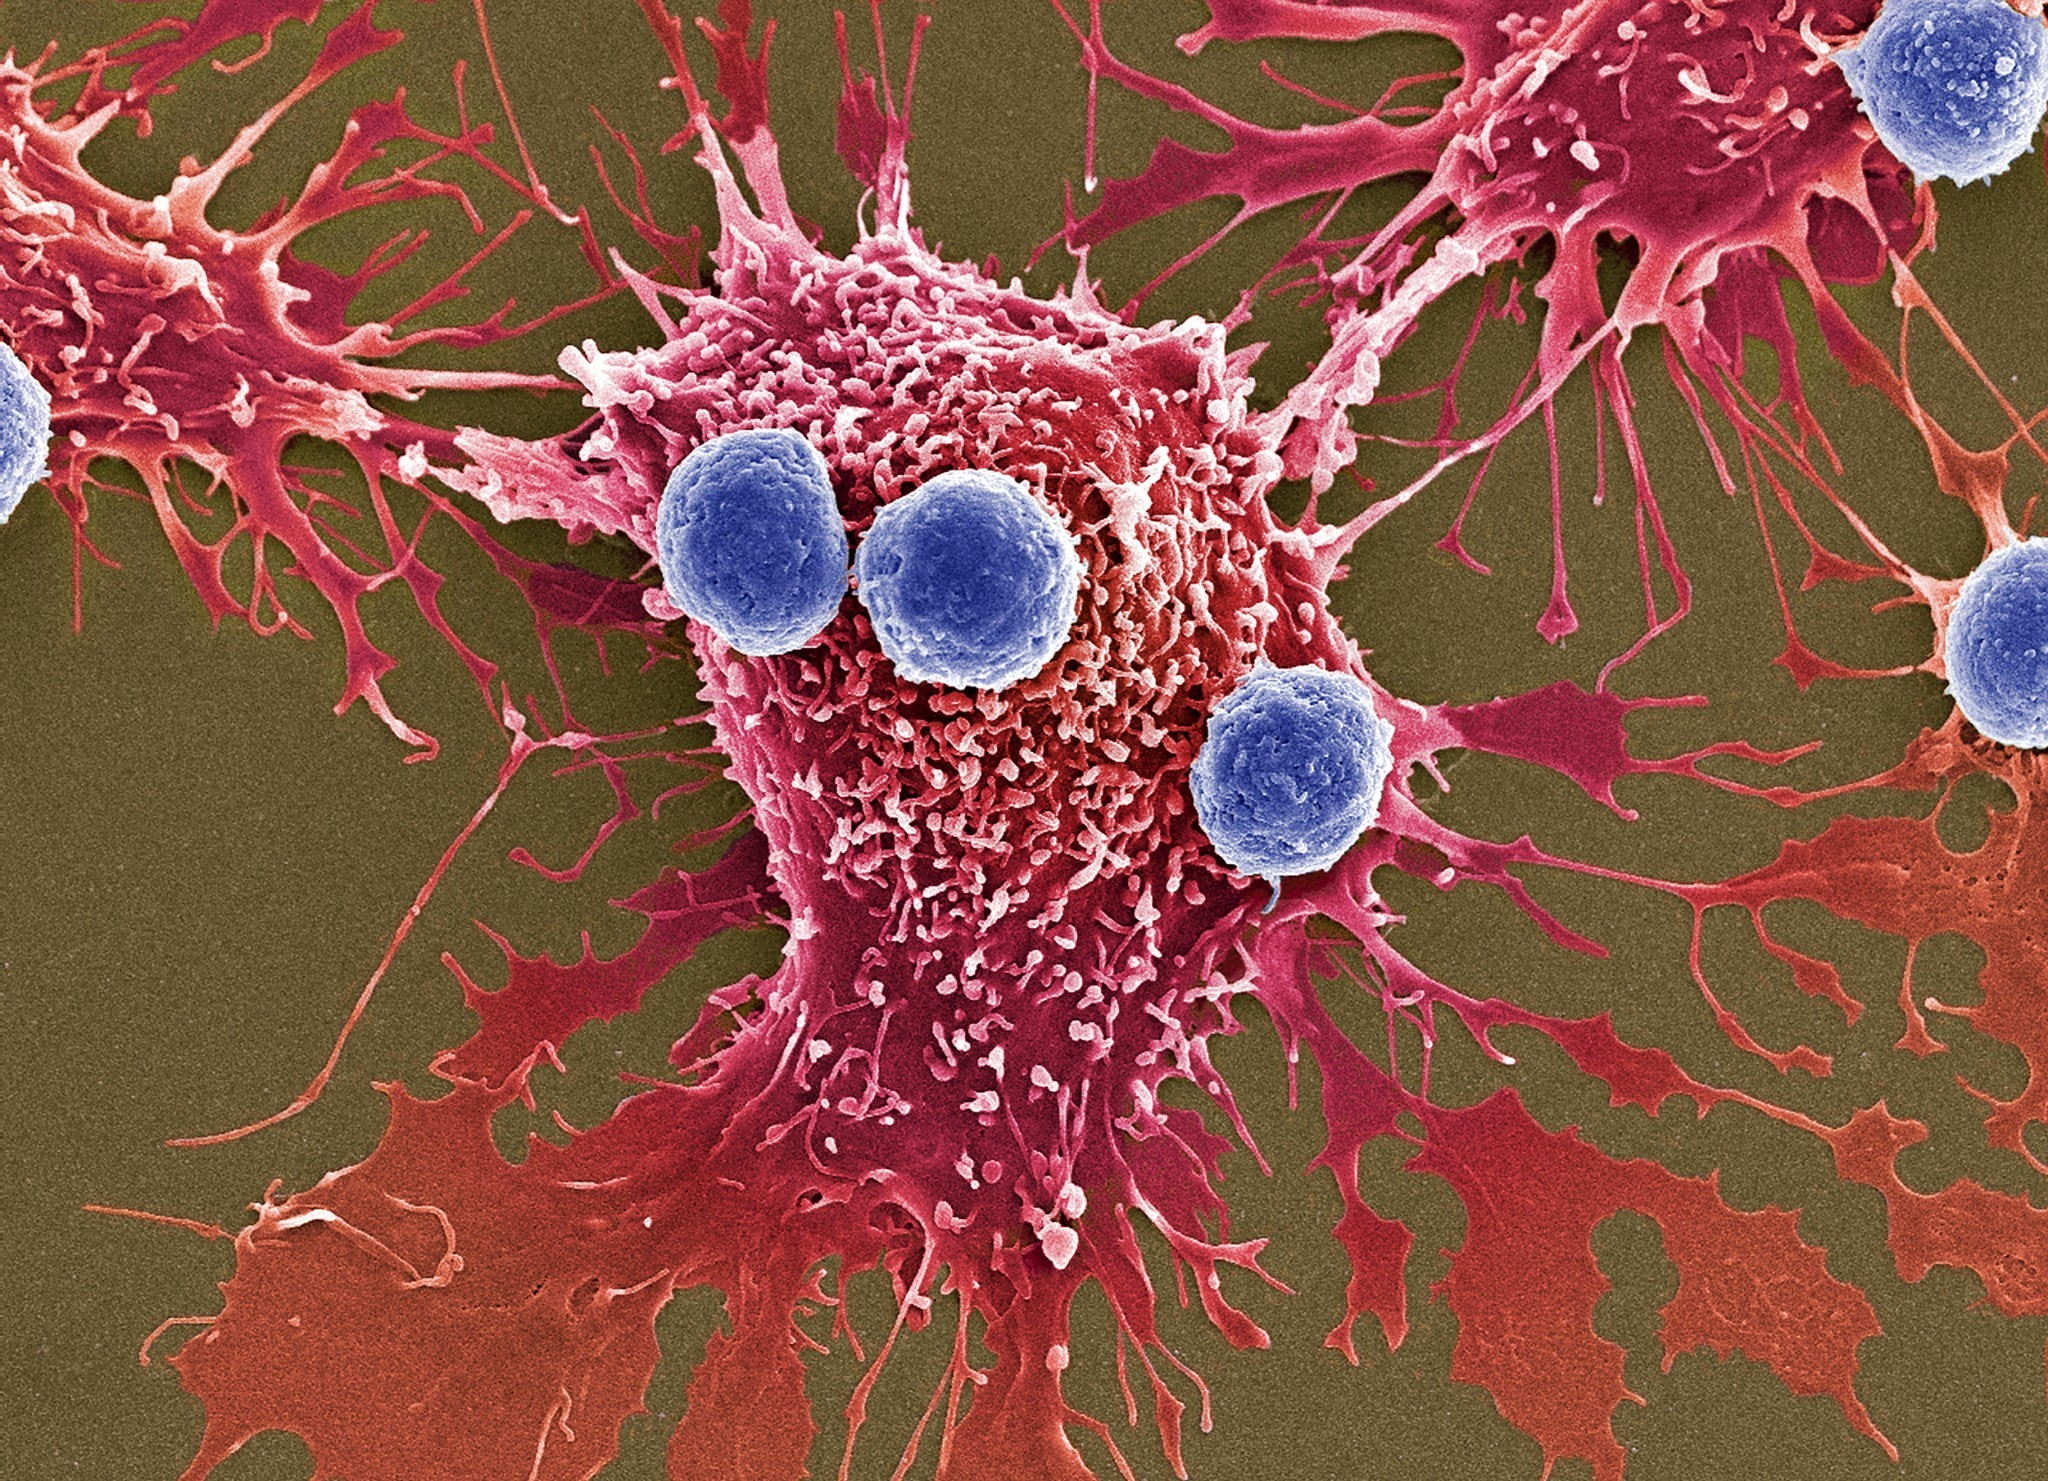 FDA Approves First Gene Therapy For Leukemia